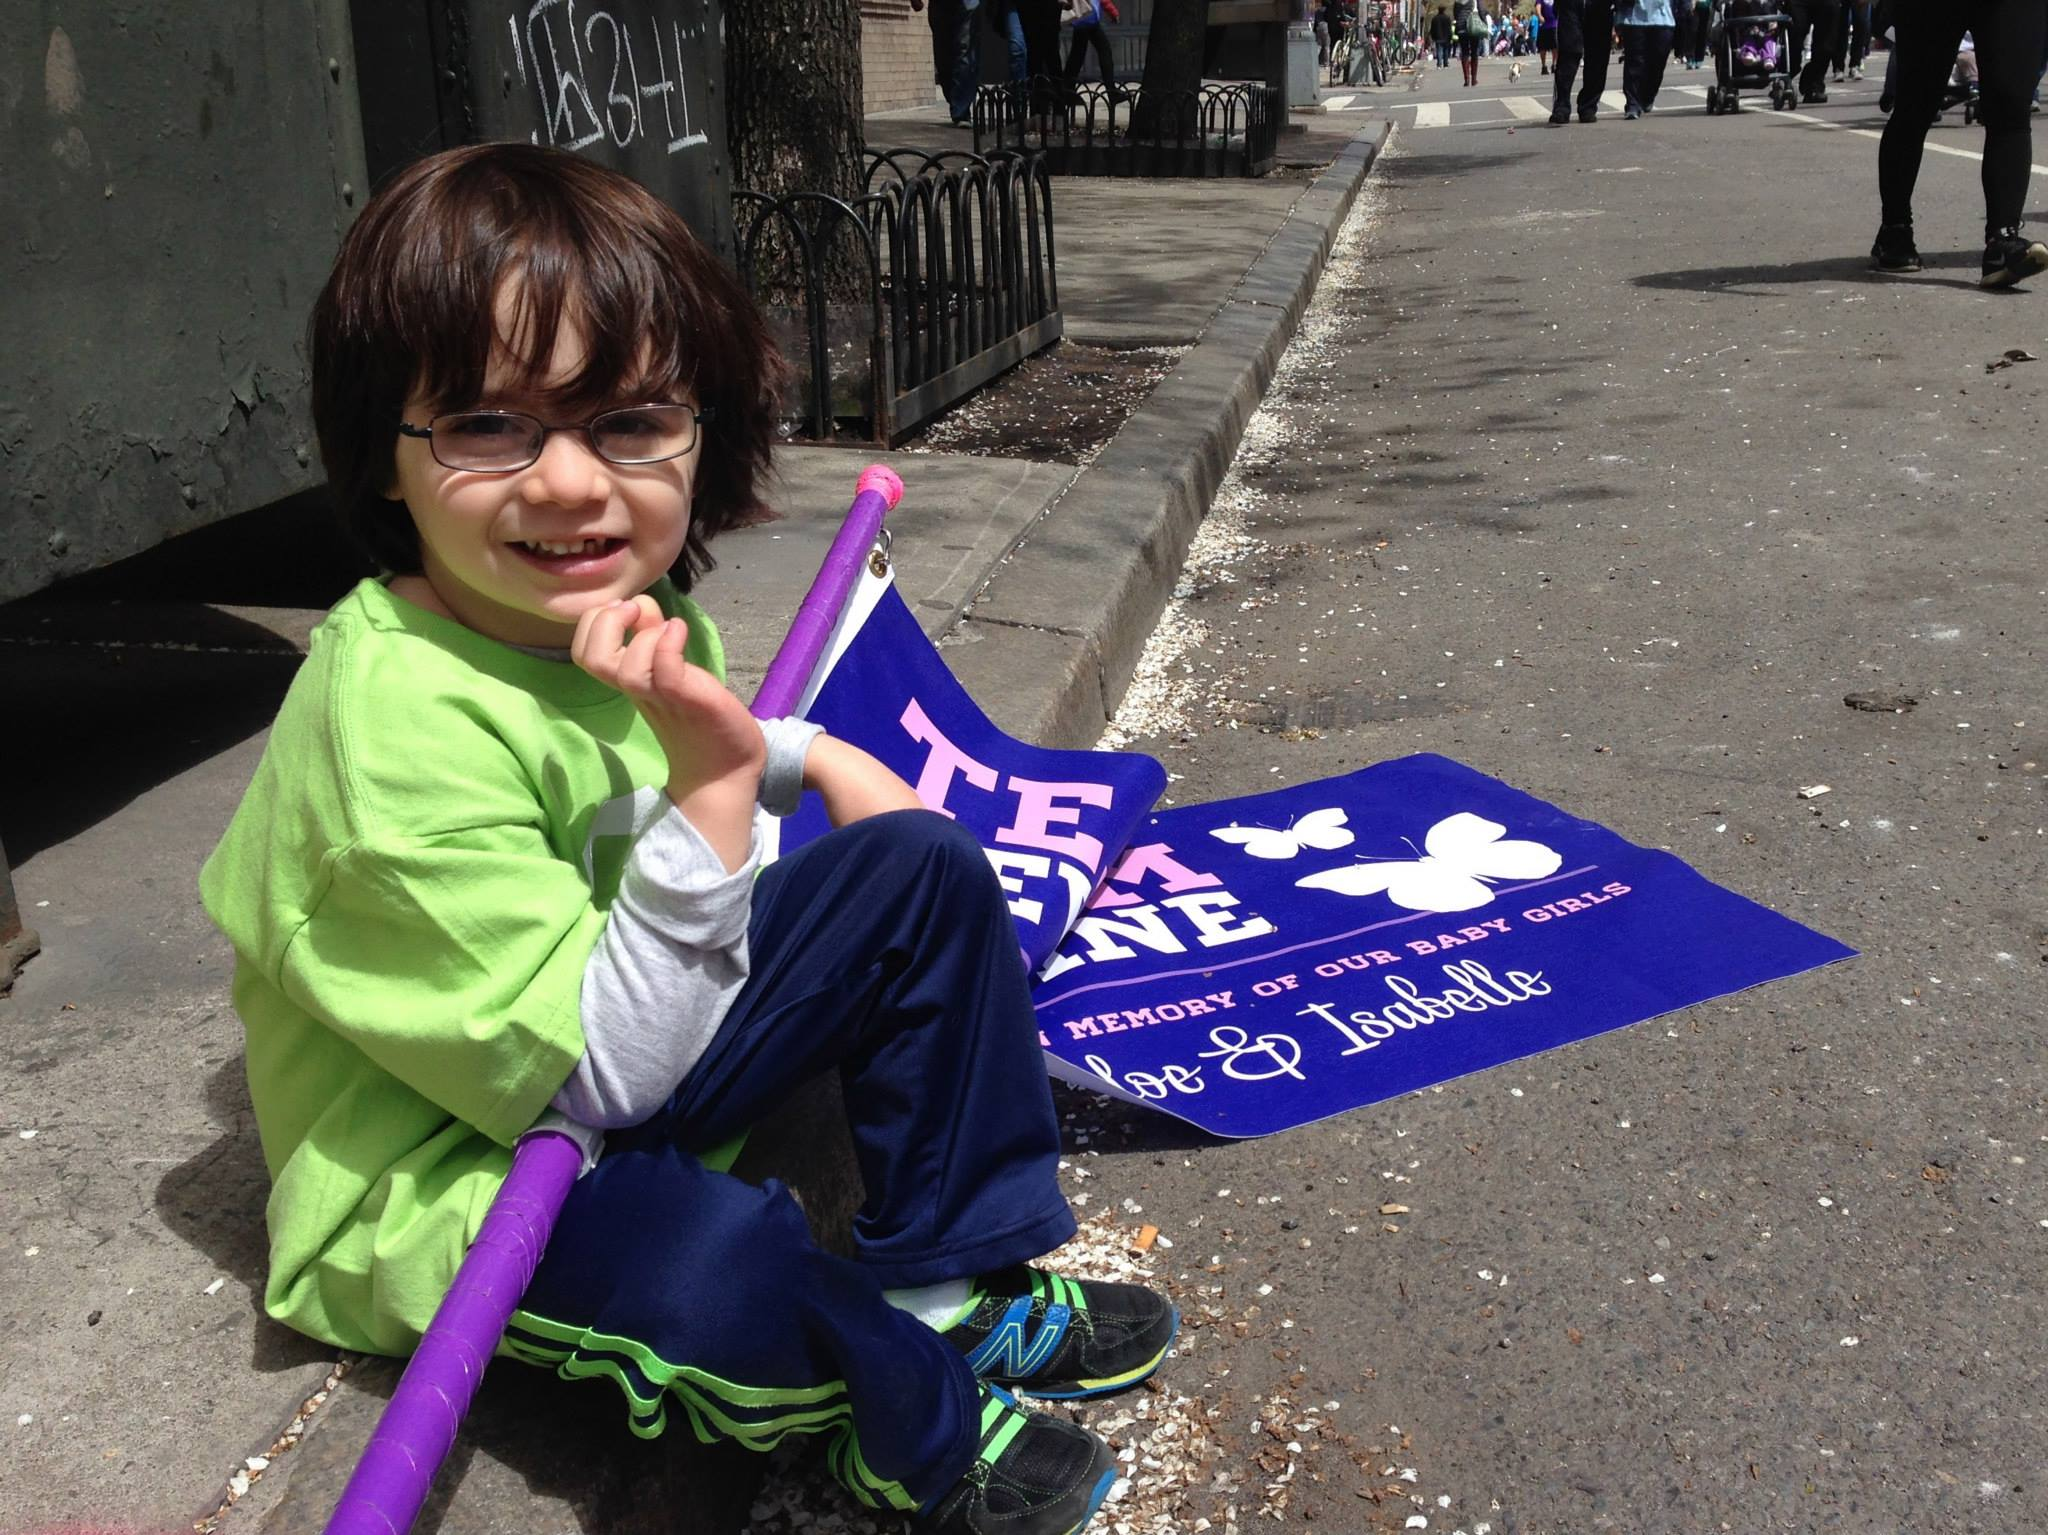 julian-levine-at-the-2015-march-for-babies-walk_16917471405_o.jpg